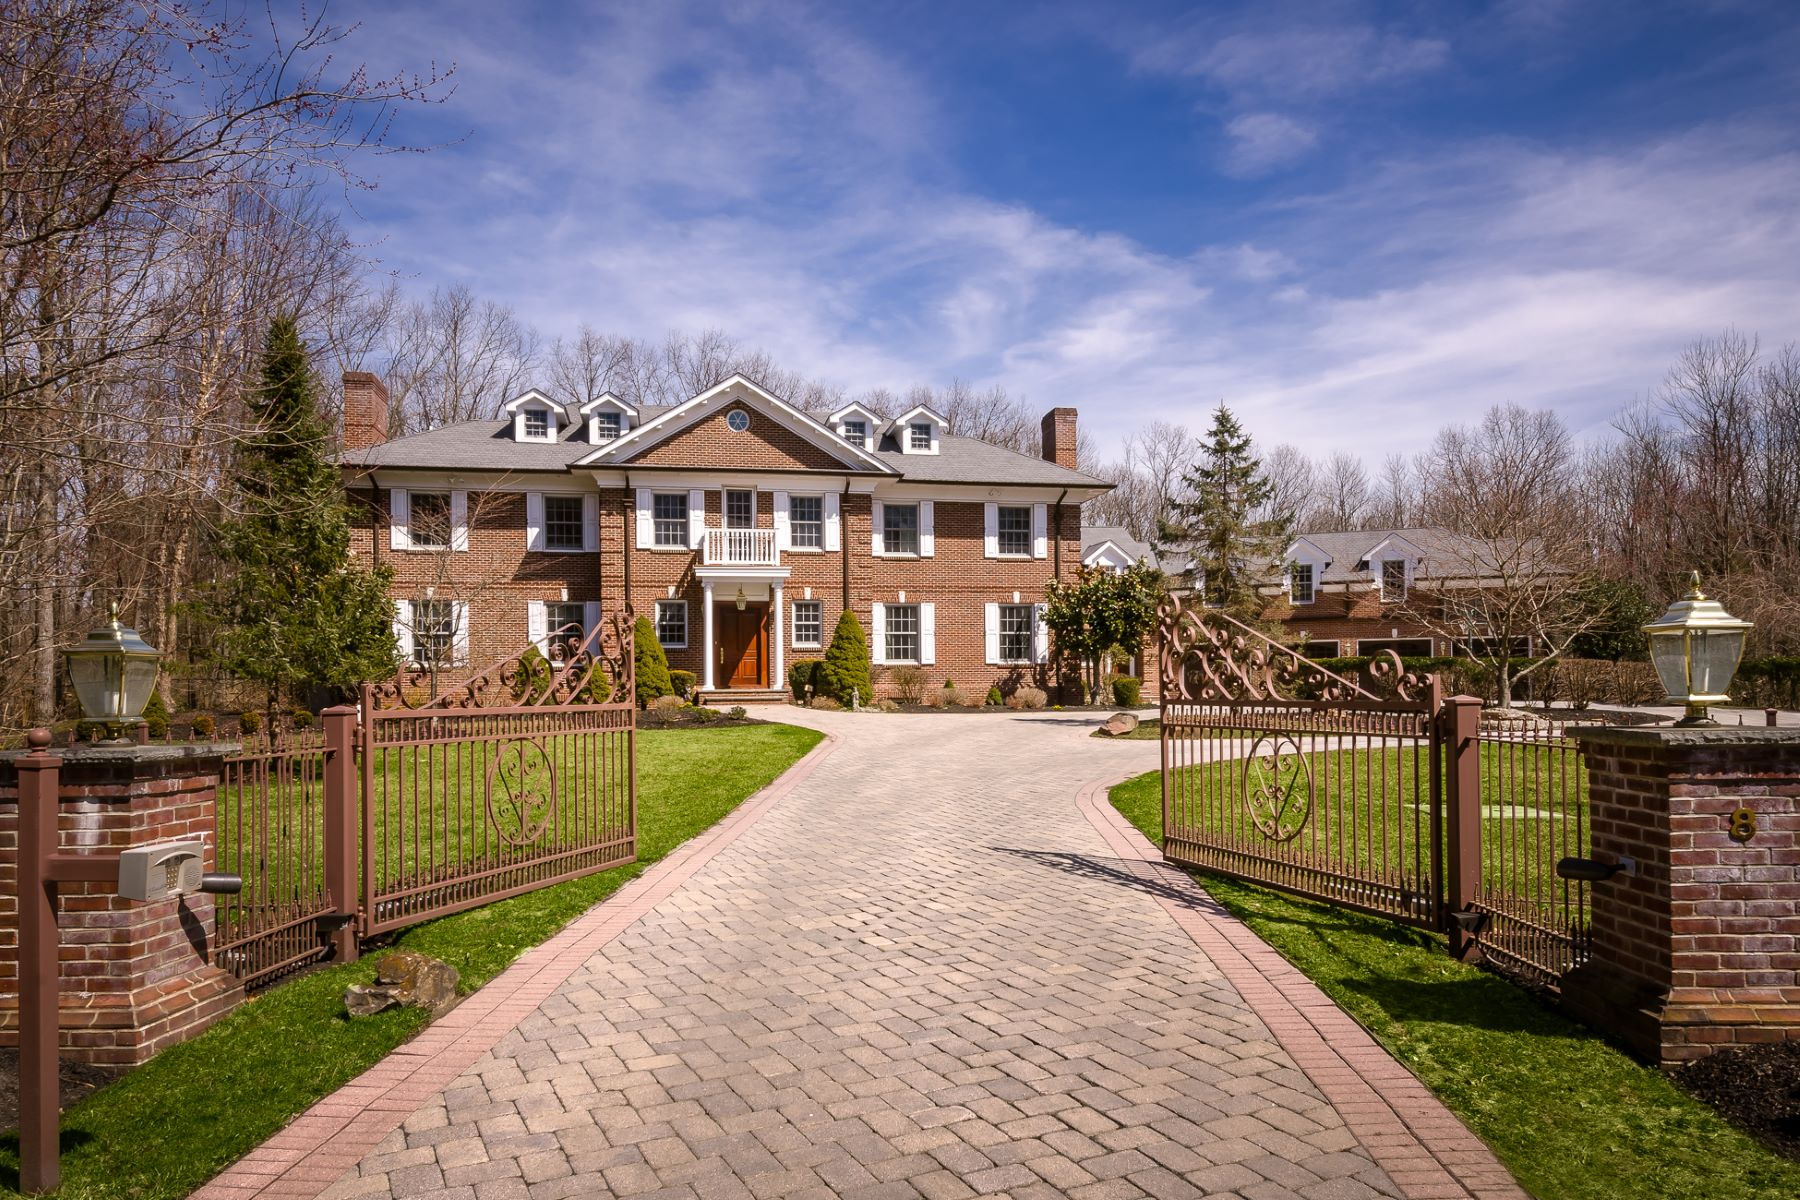 single family homes for Sale at Stonybrook Manor: Once-in-a-Lifetime Magnificence 8 Players Lane, Princeton, New Jersey 08540 United States